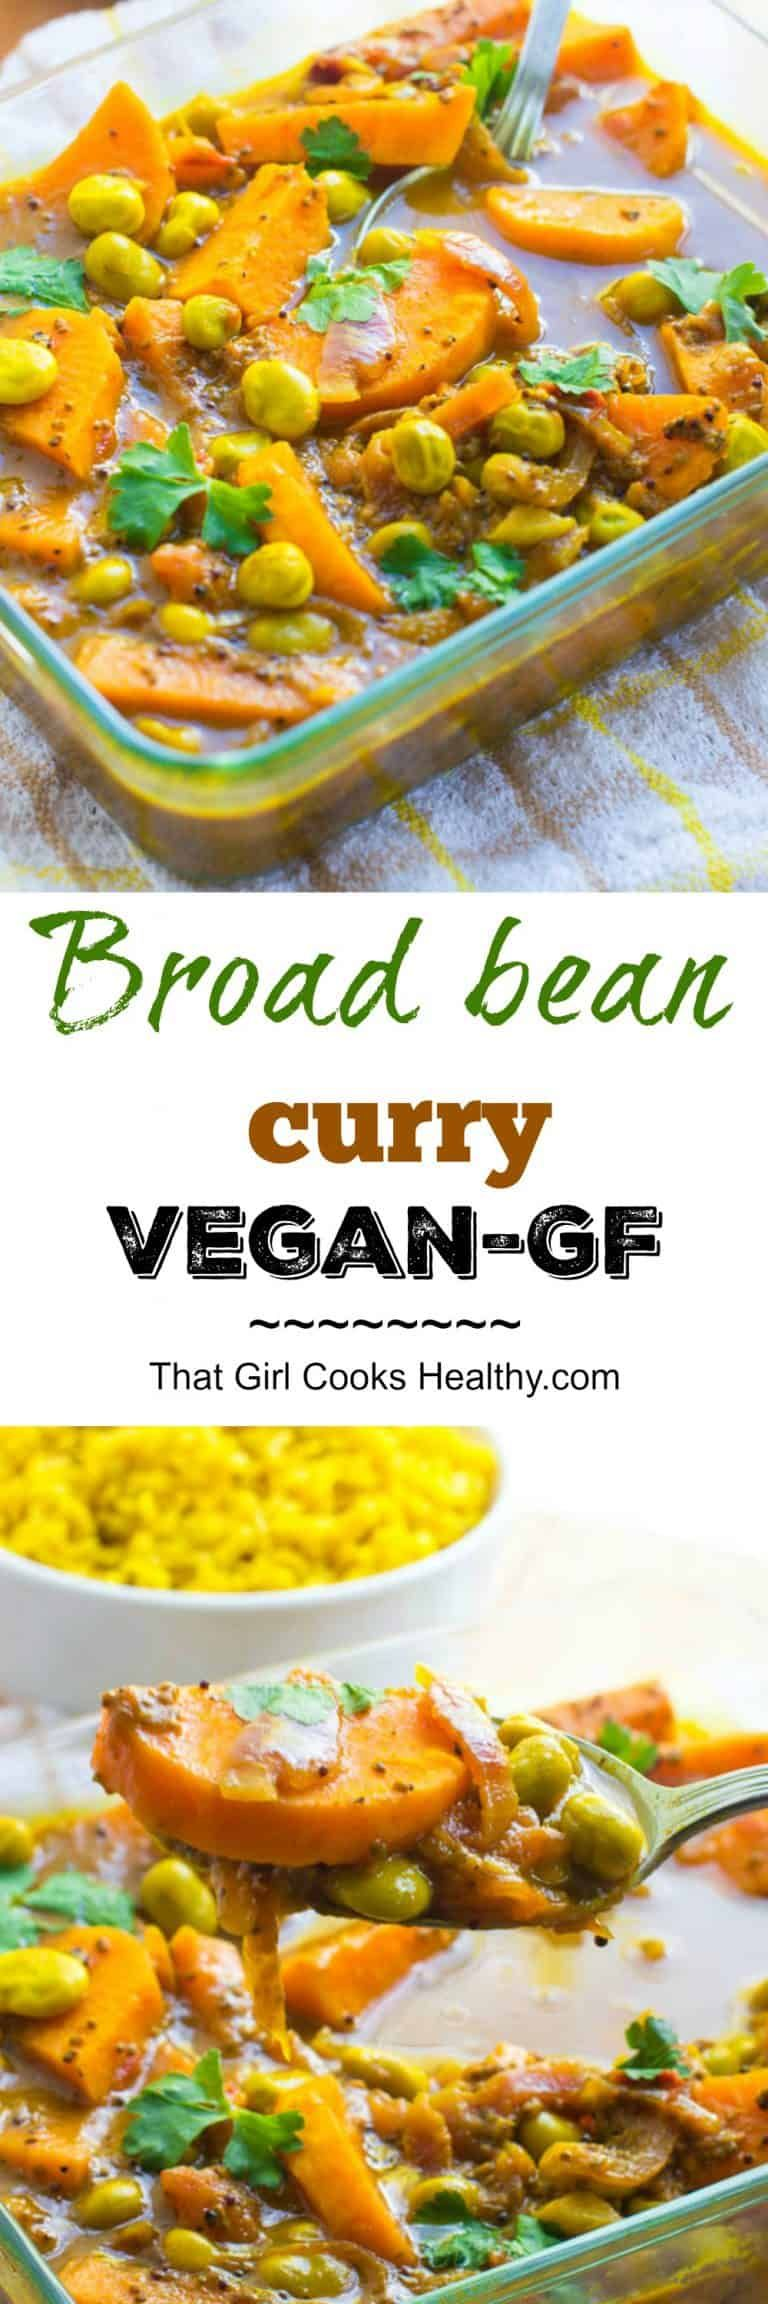 Broad Beans Curry